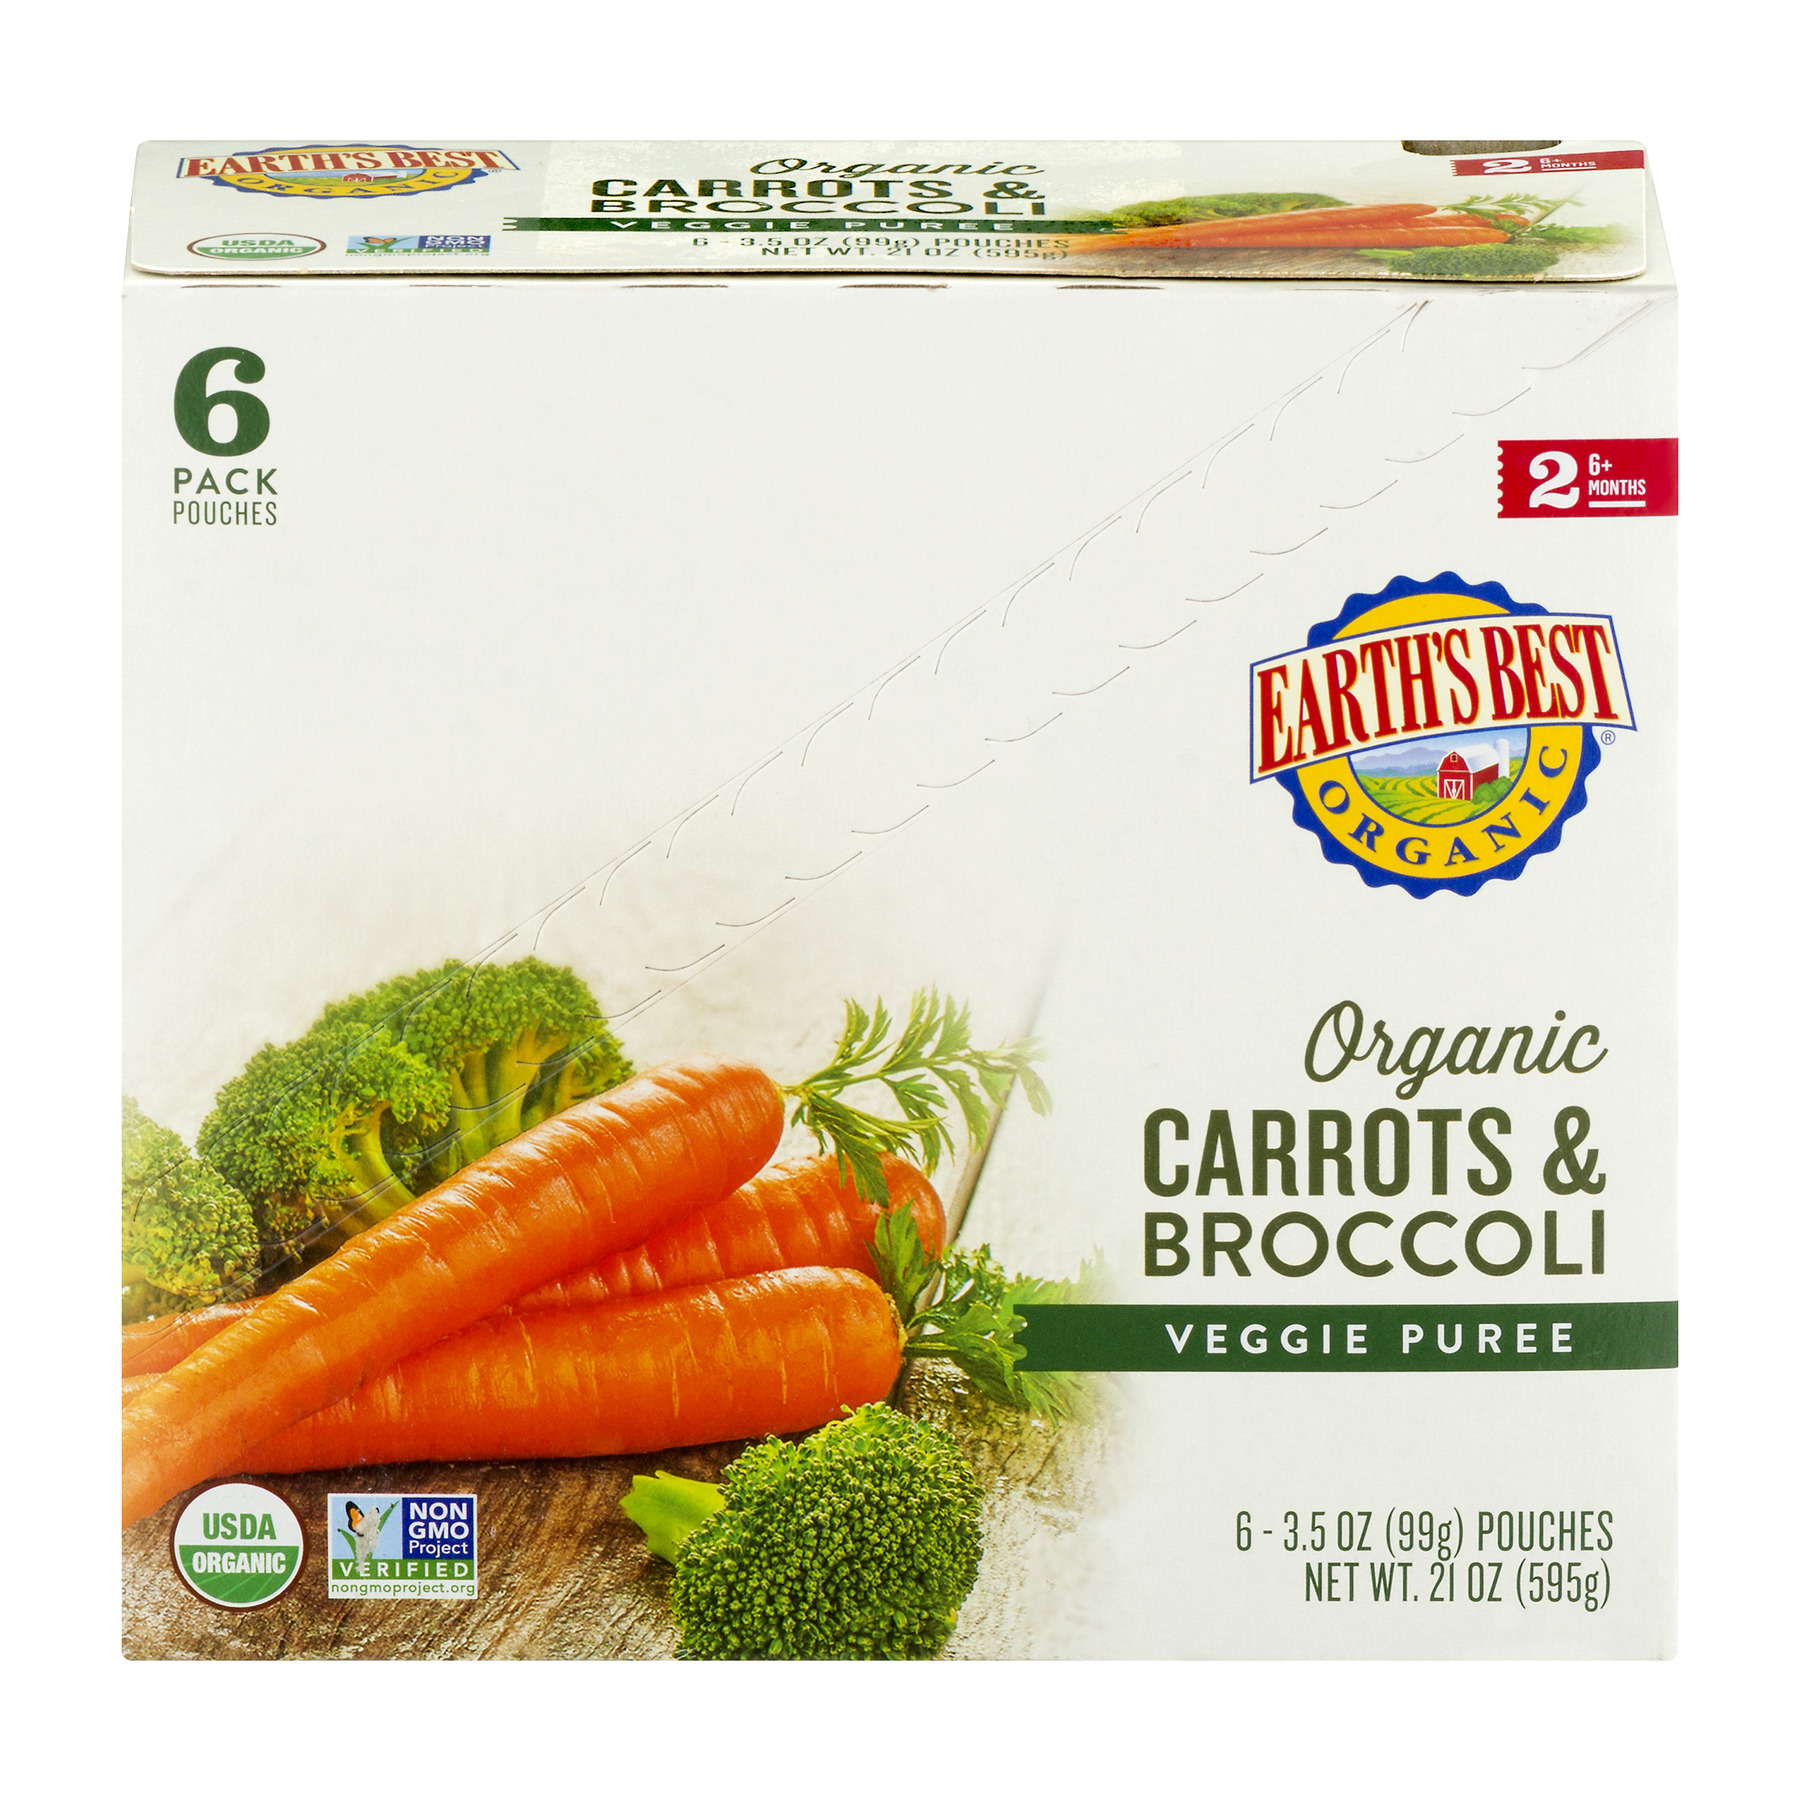 Earth's Best Organic Carrots & Broccoli Veggie Puree 6m+ 6 PK, 6.0 PACK